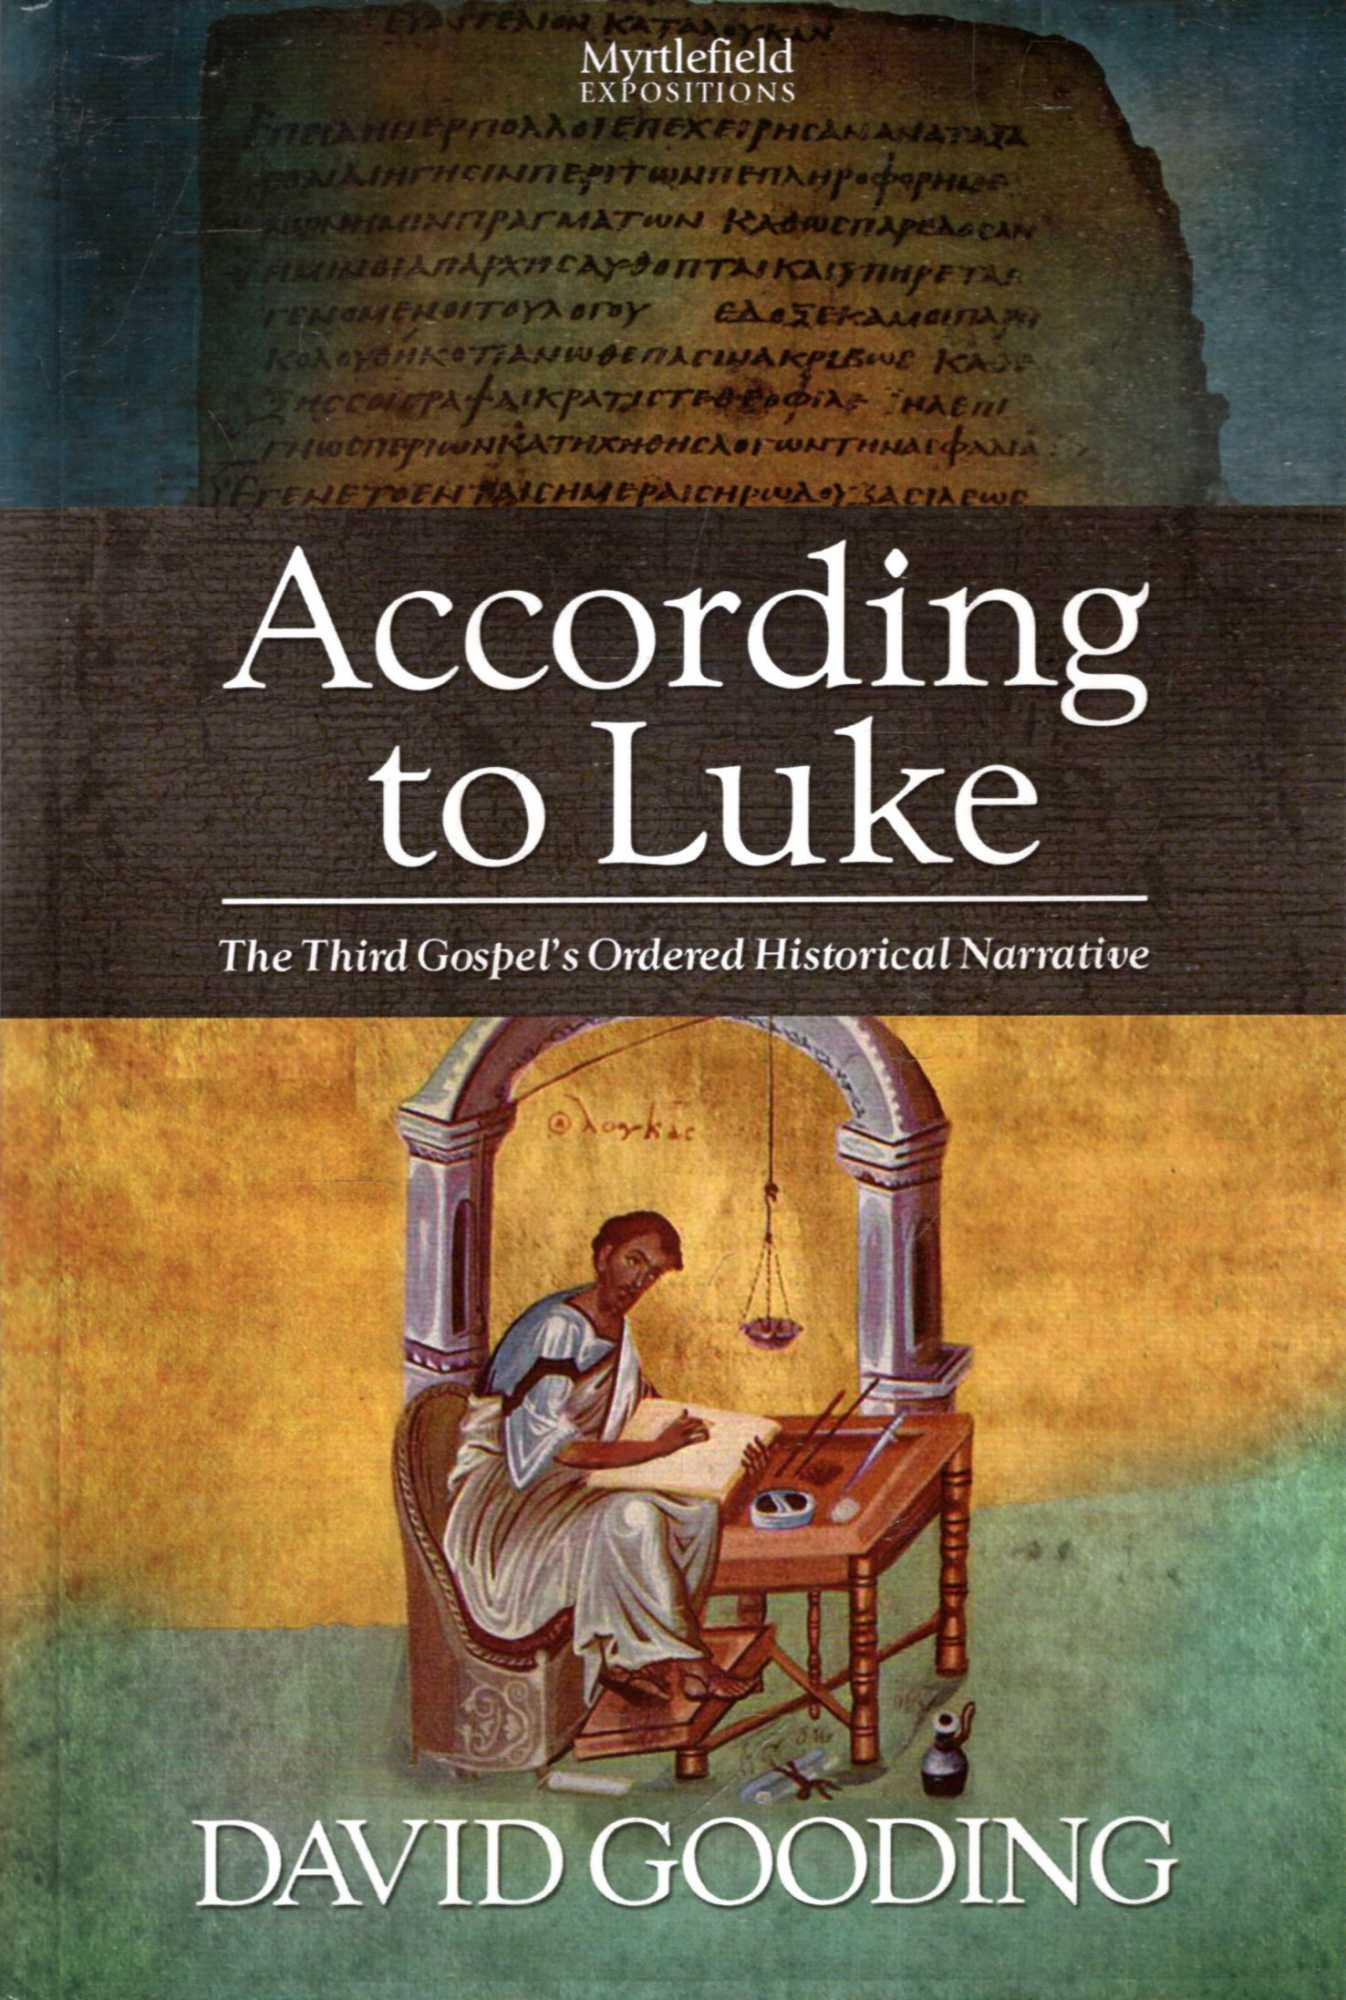 Image for According to Luke : the third Gospel's Ordered Historical Narrative